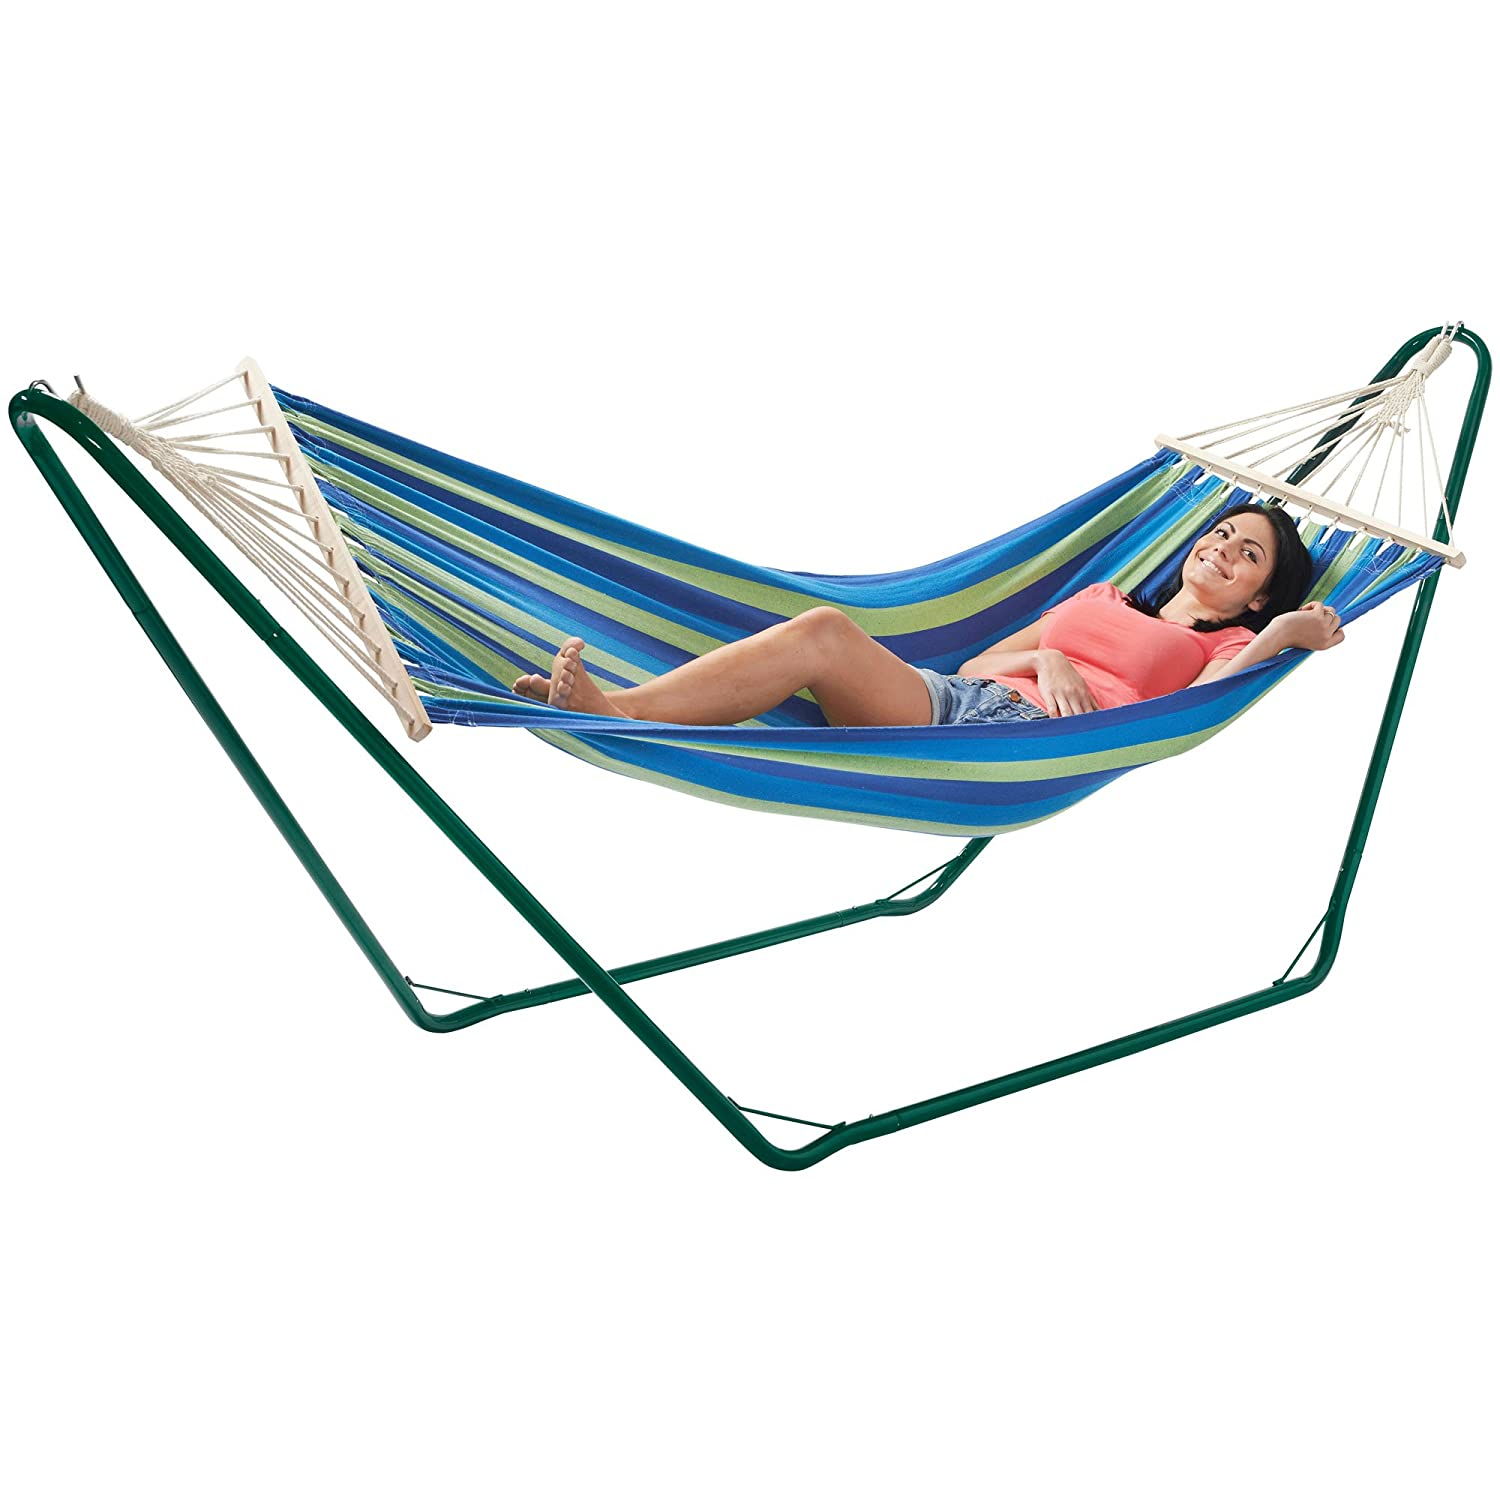 VonHaus Hammock With Metal Frame   Luxury Standing Swinging Hammock For  Outdoor, Garden And Patio